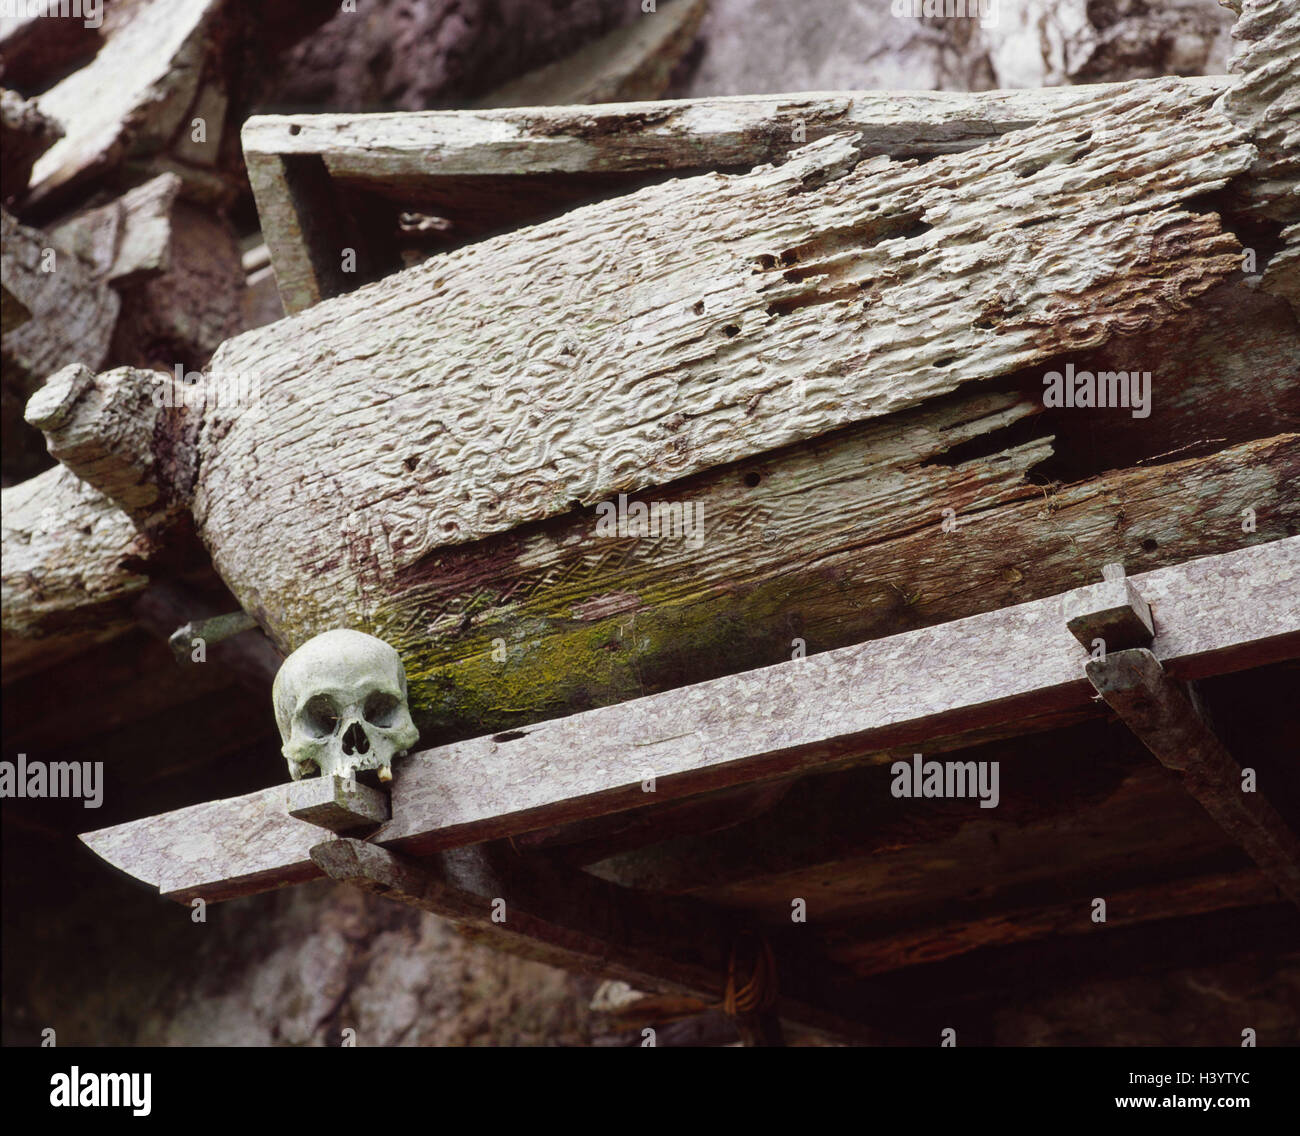 Indonesia, Kete-Kesu, goal nanny's tomb, coffin, dead person's skull, South-East Asia, island state, Celebes, - Stock Image